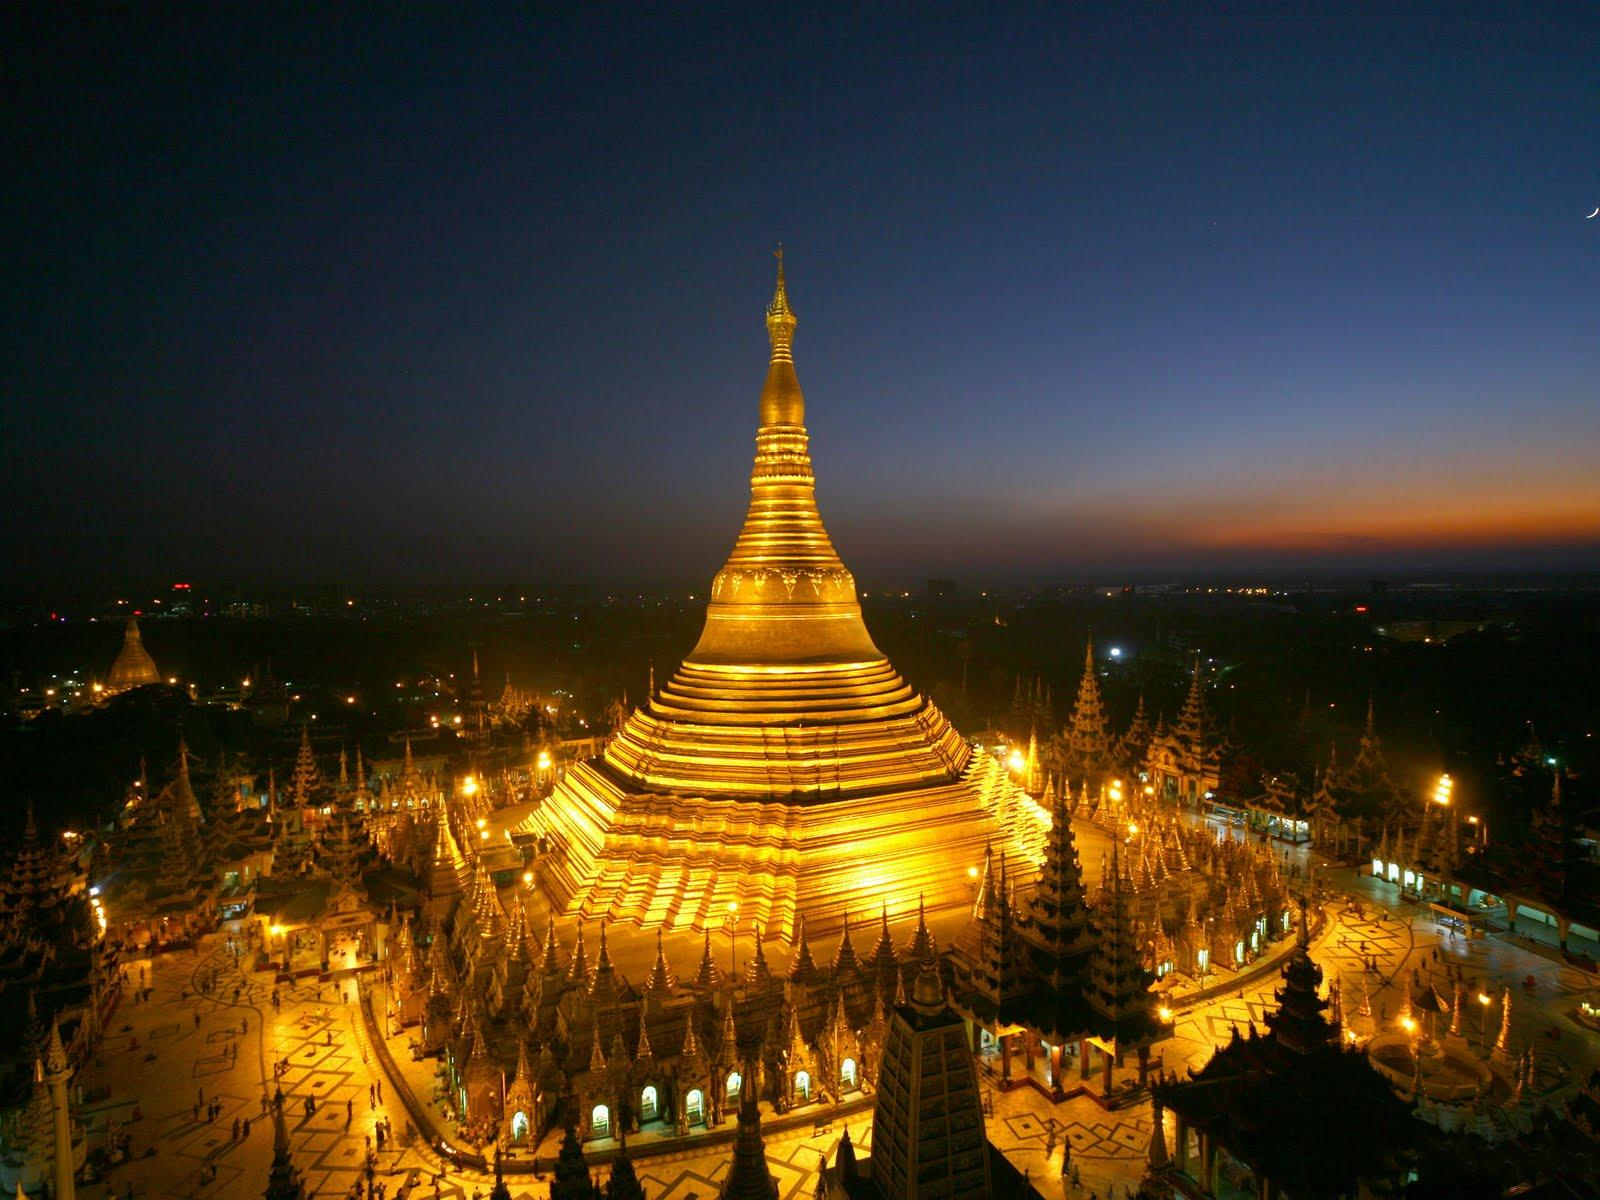 Golden Pagoda becomes the symbol of Myanmar